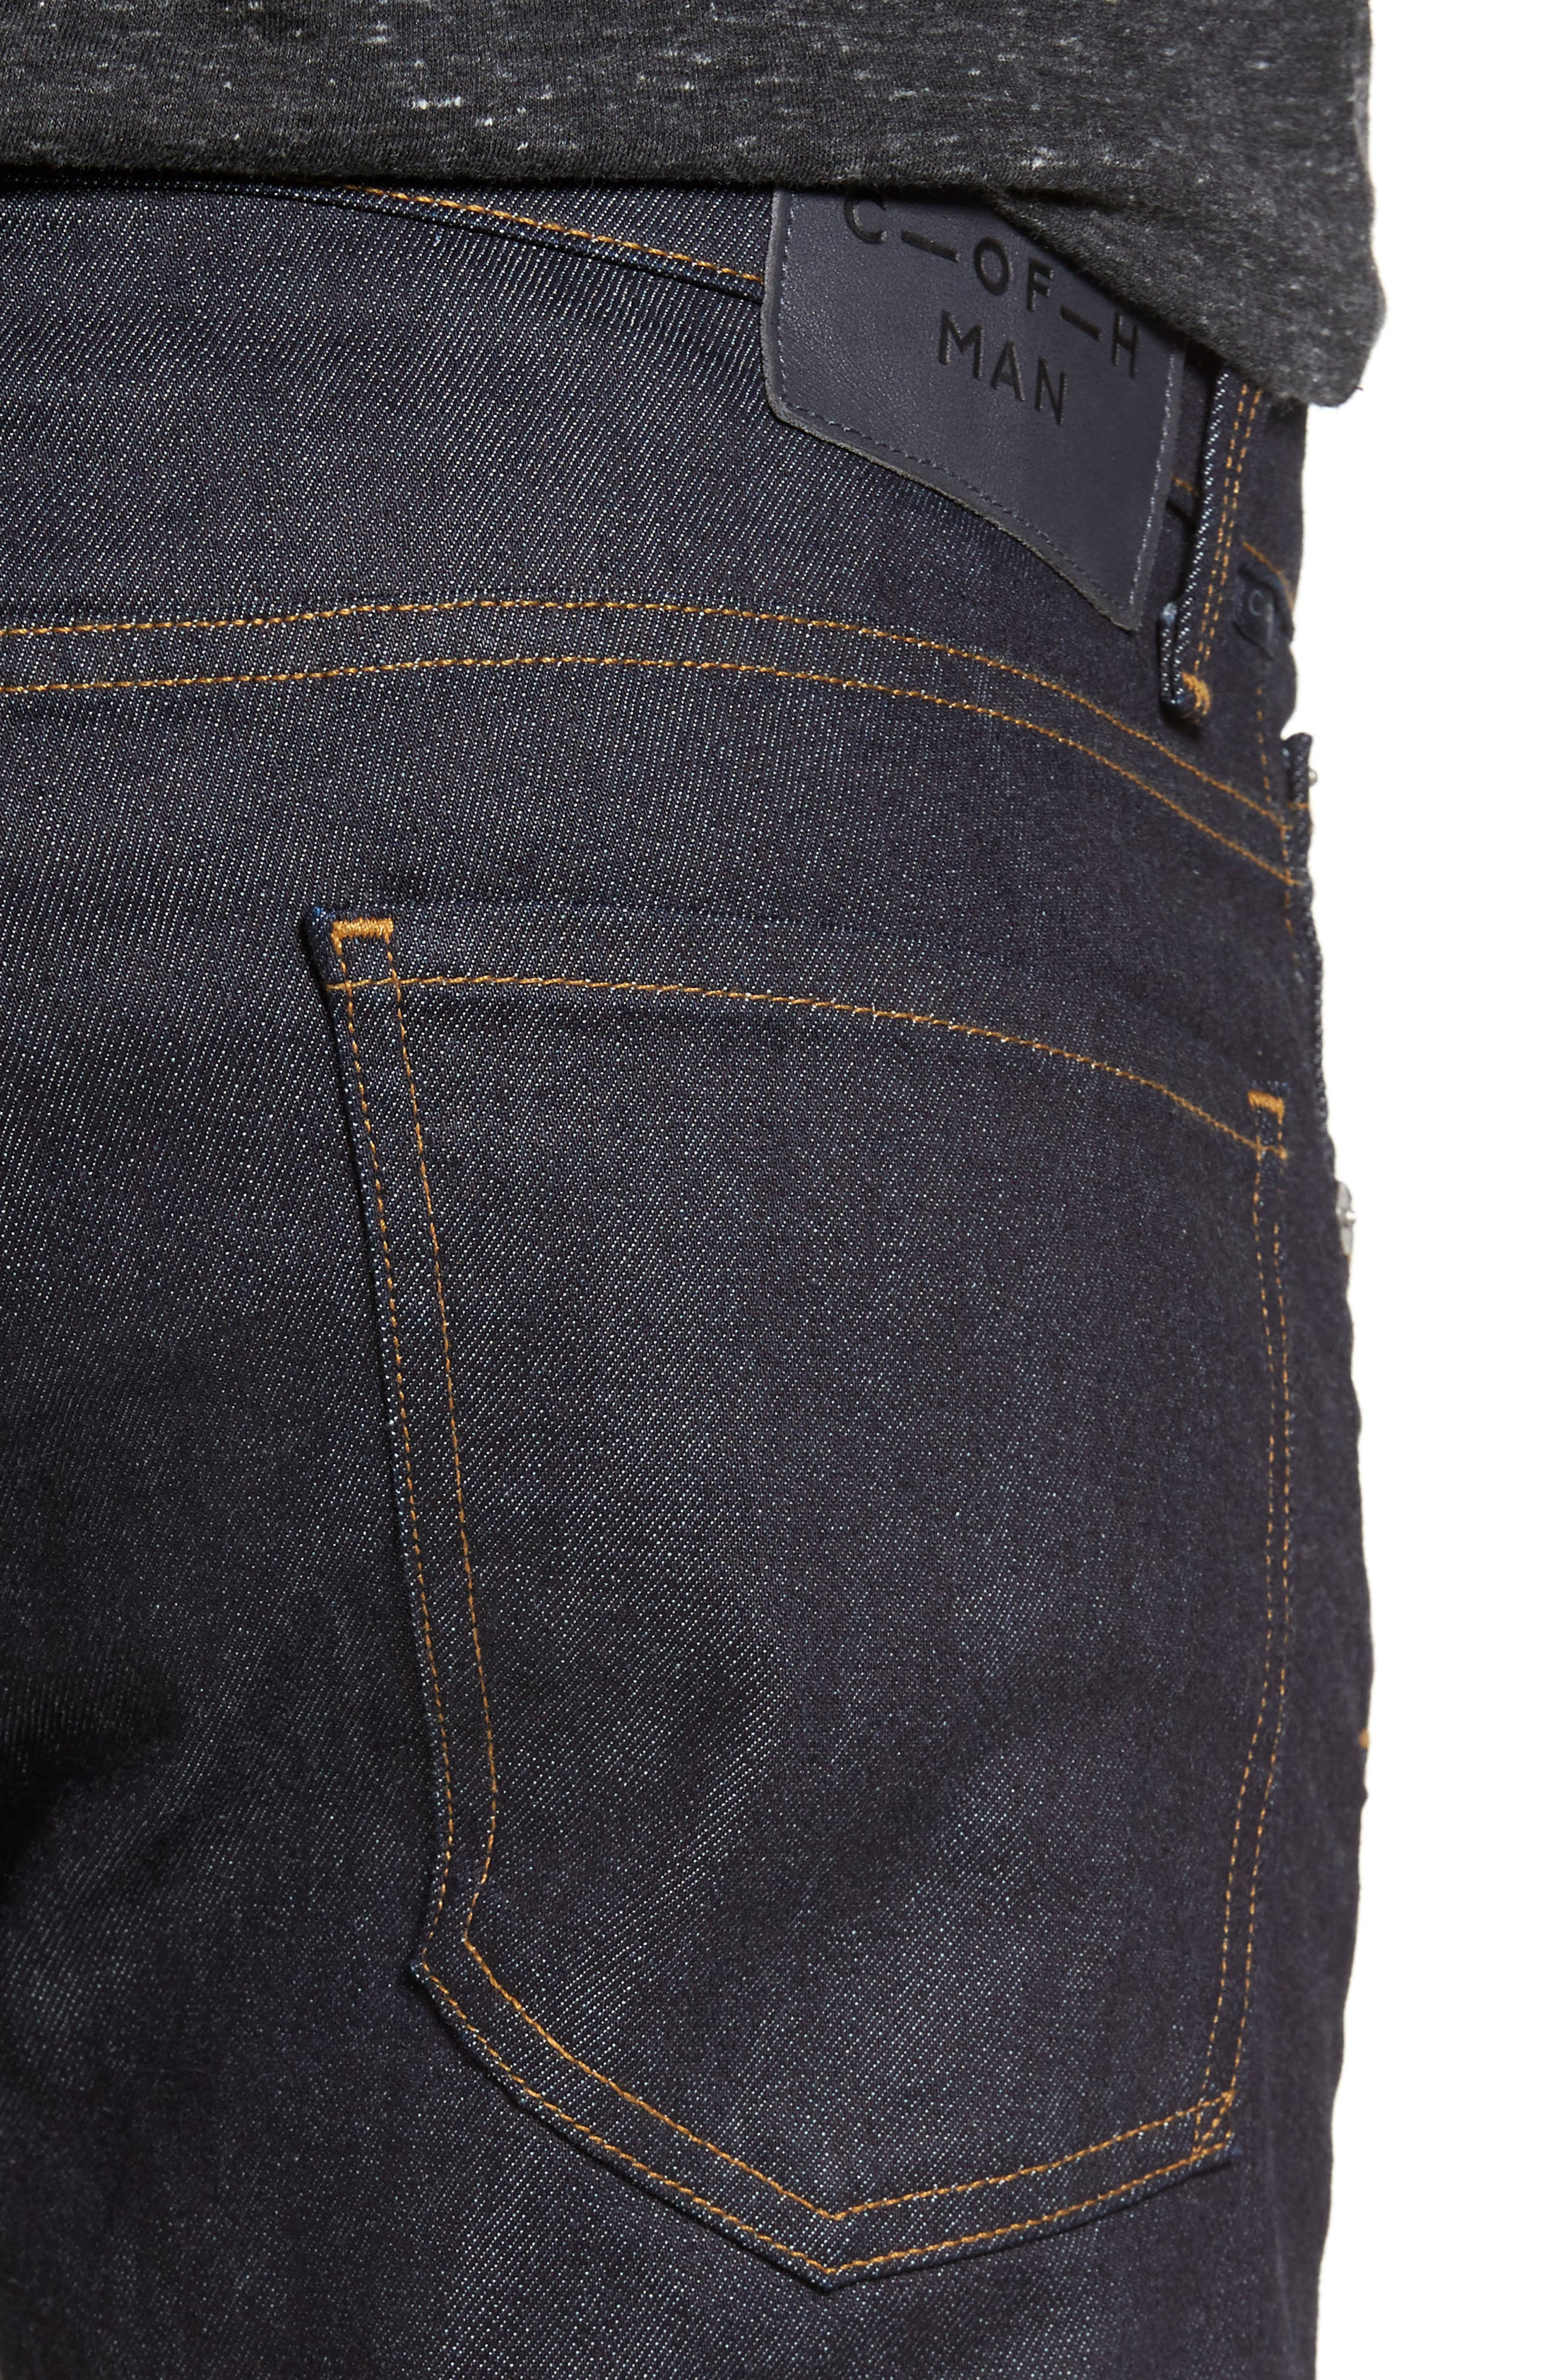 Bowery Slim Fit Jeans,                             Alternate thumbnail 5, color,                             432